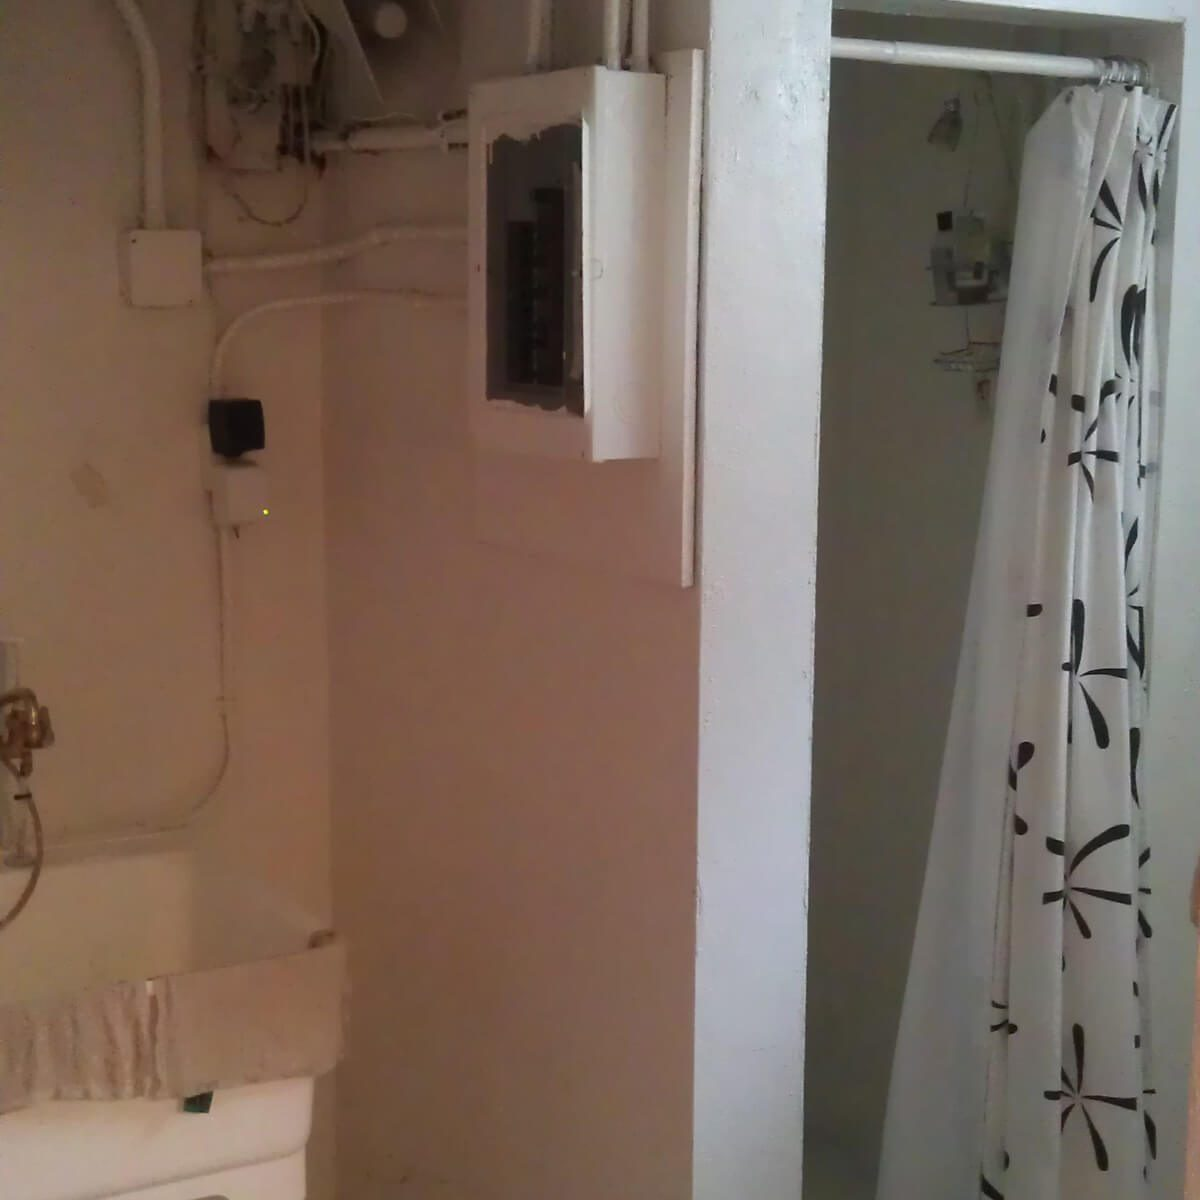 Service panel/shower combo